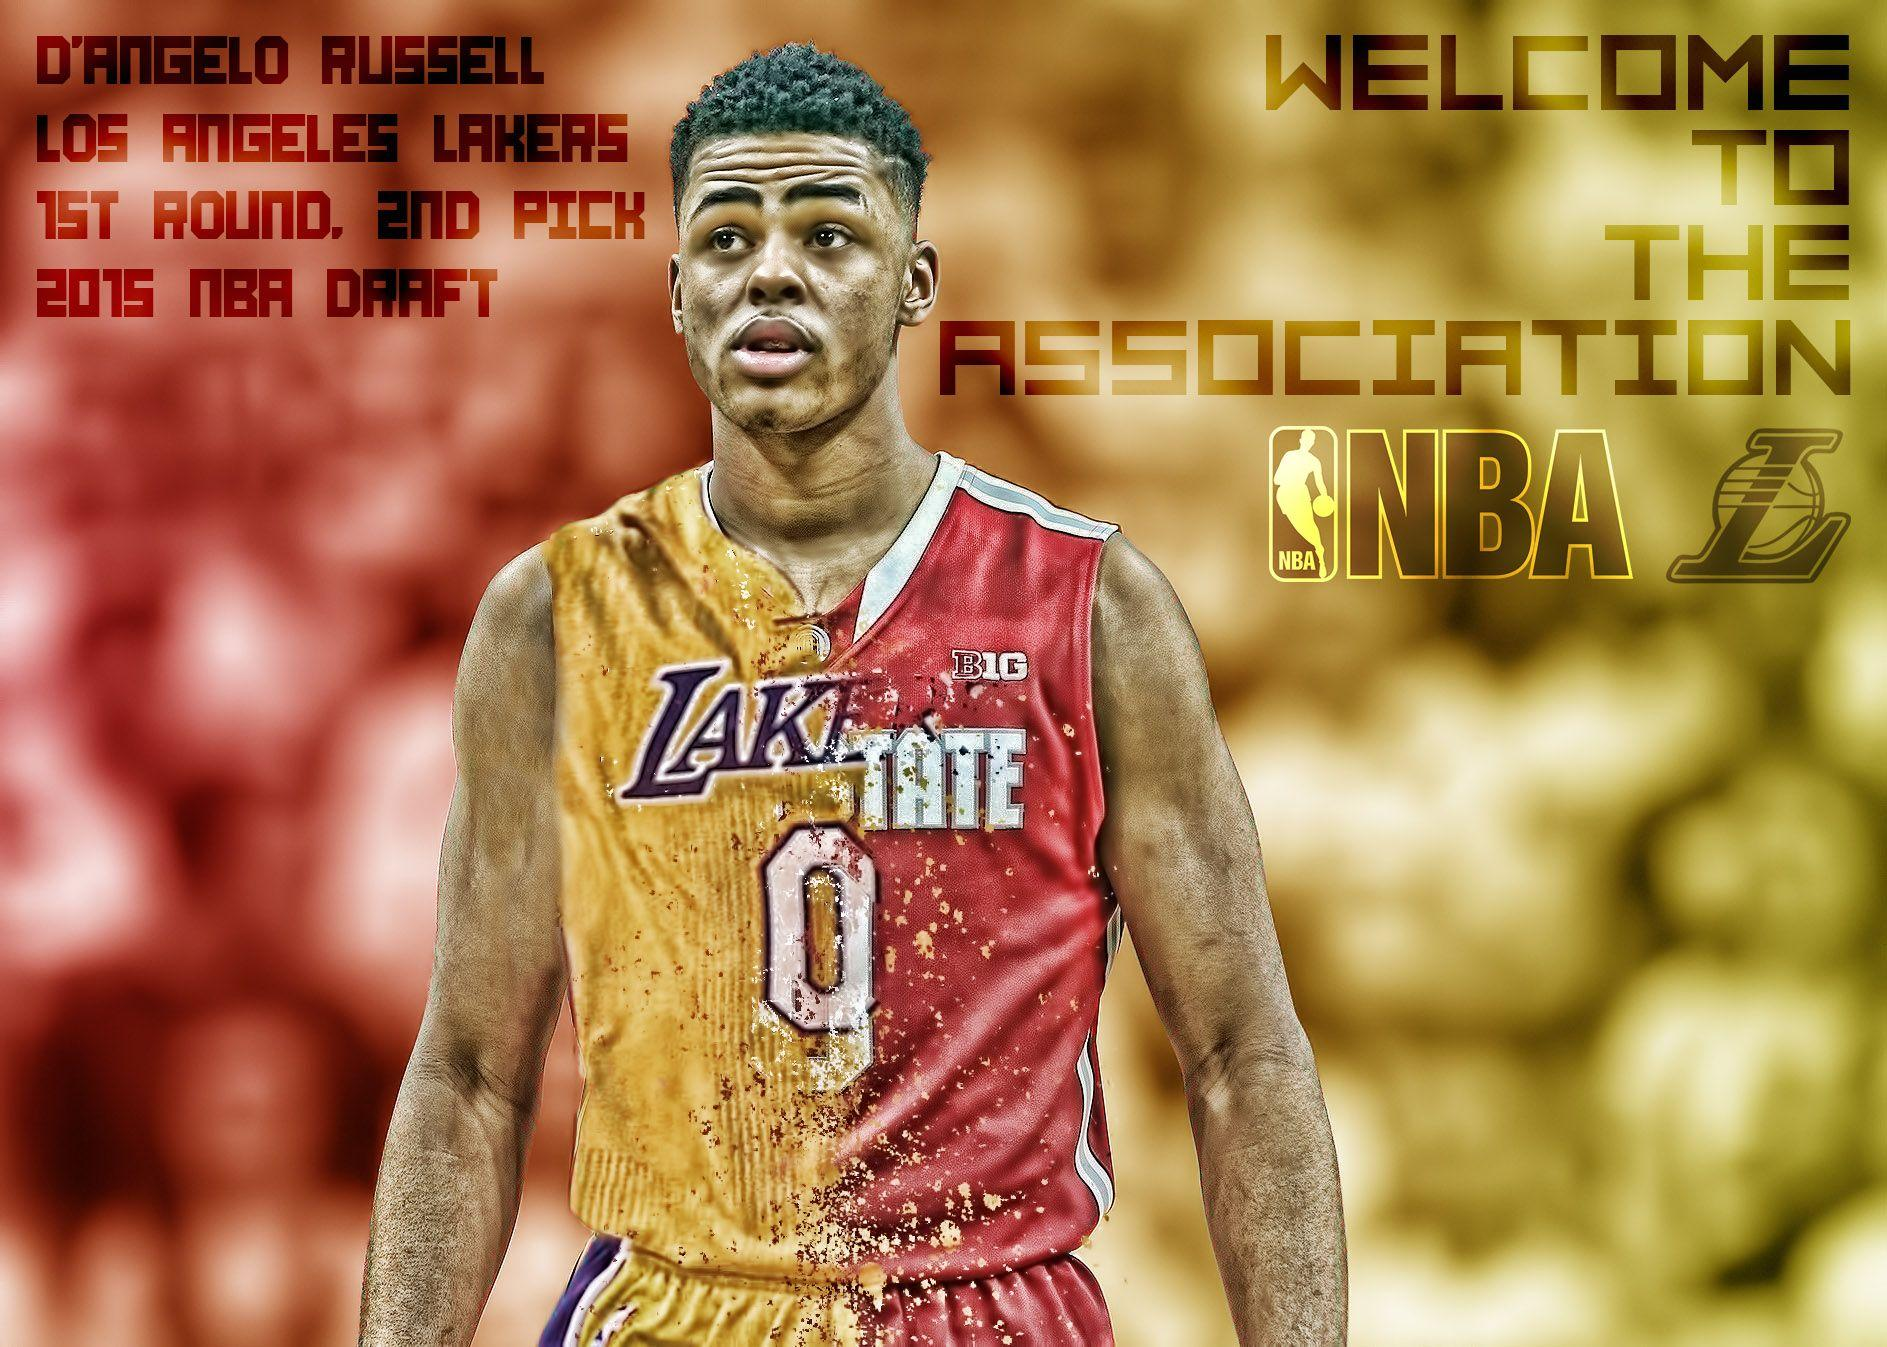 Awesome D Angelo Russell Wallpapers